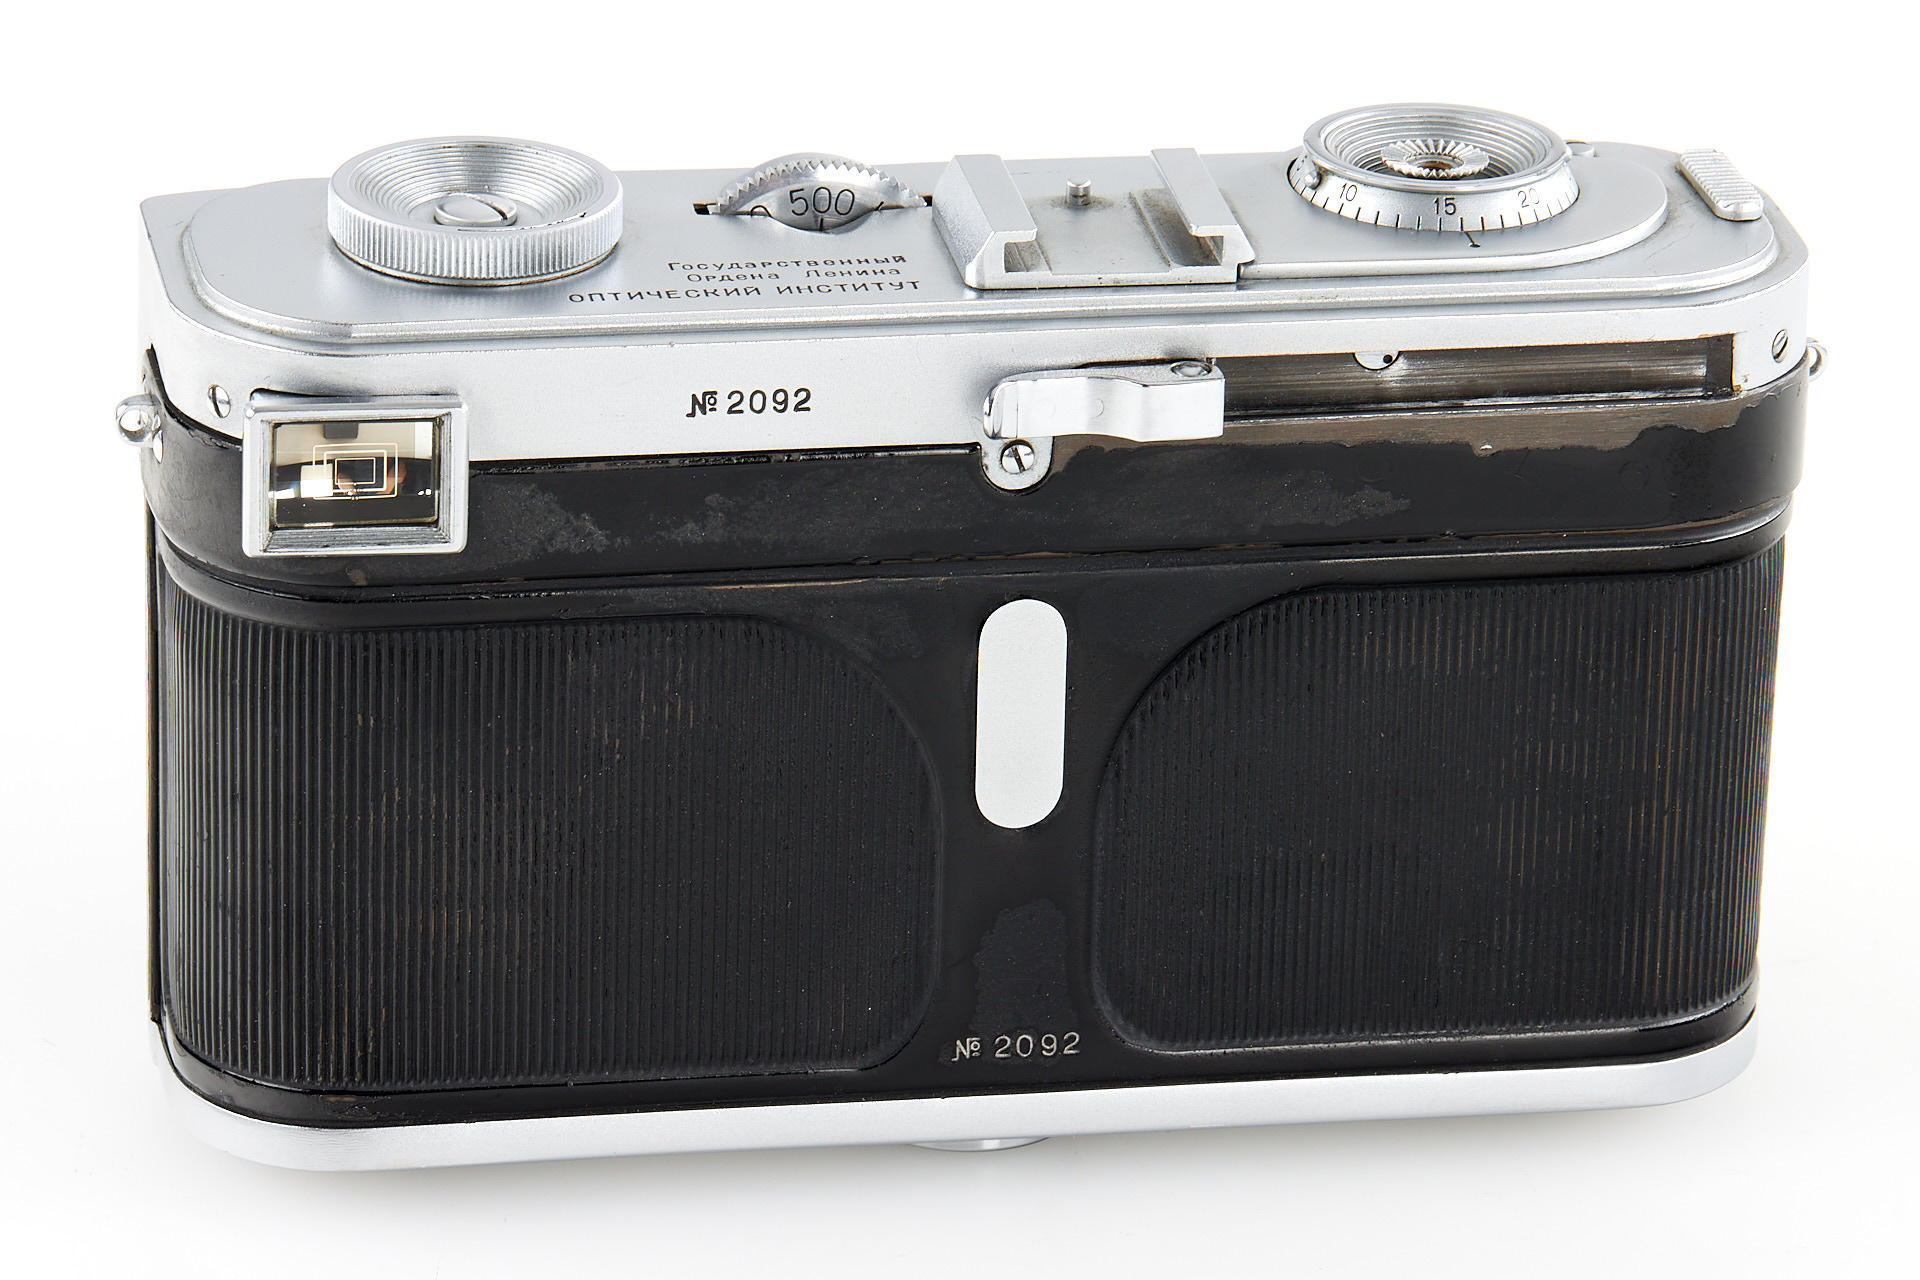 Rear of prototype camera (Pic: Leitz Photographica Auction)